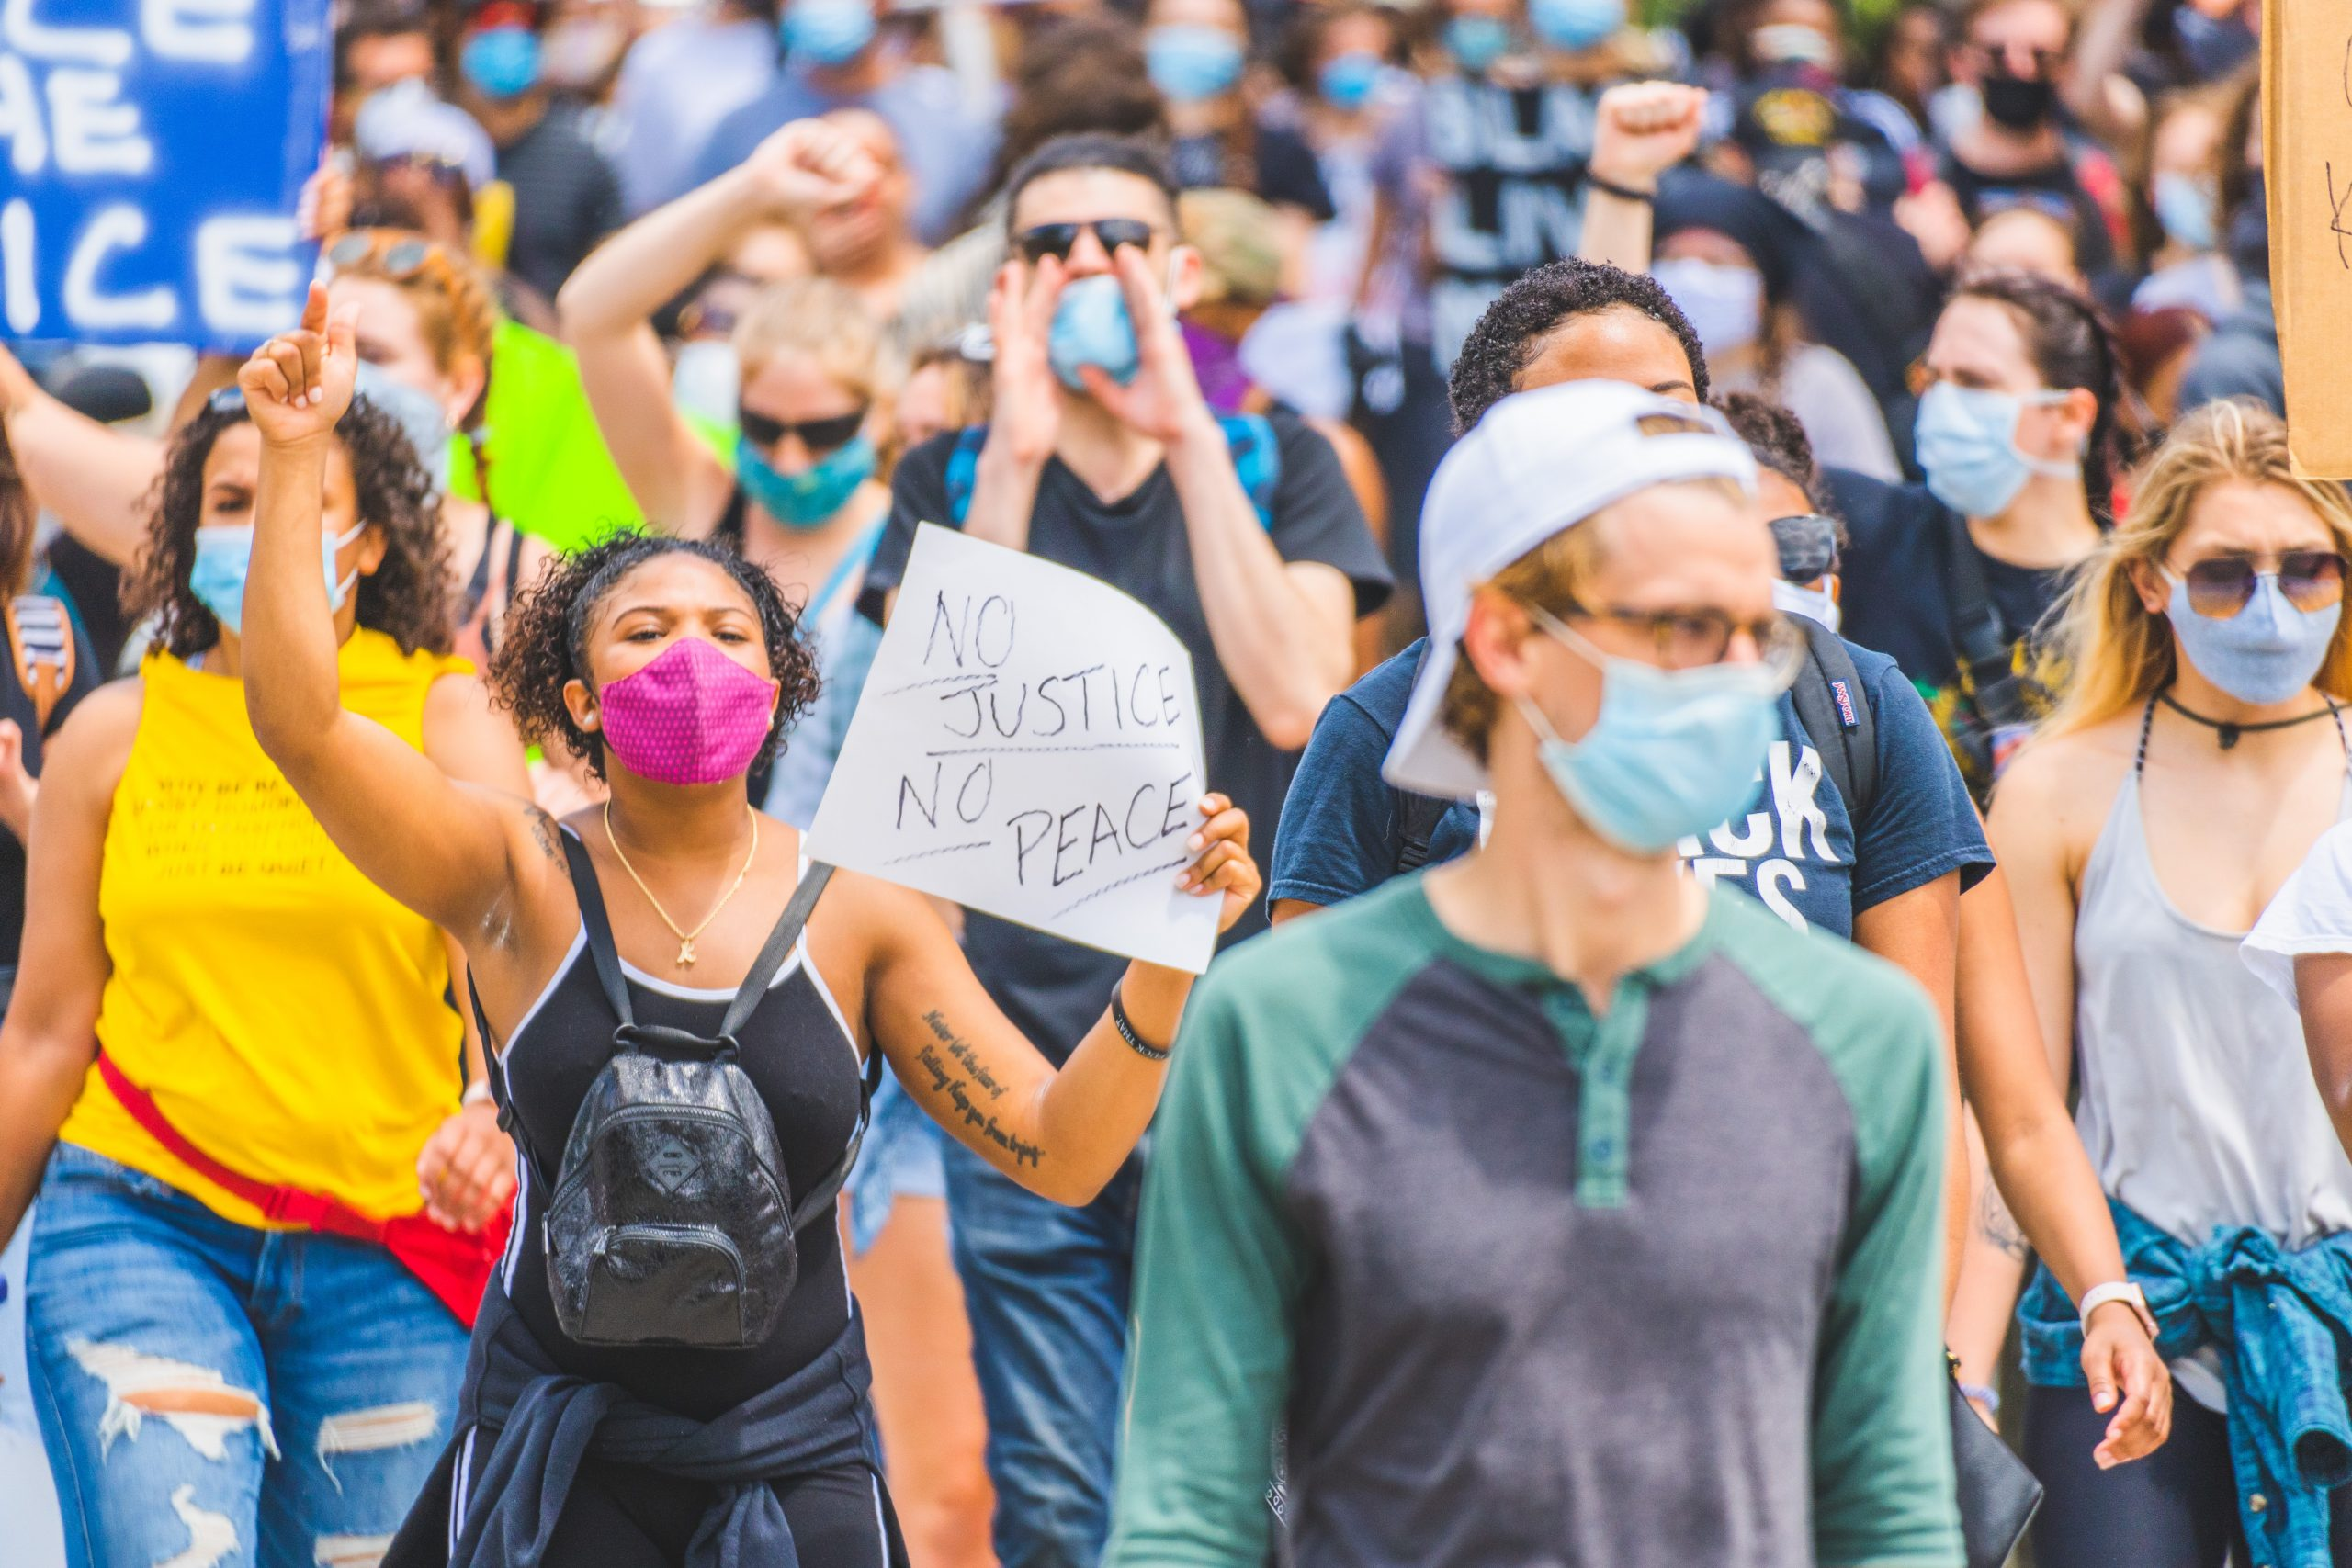 demonstrators wearing masks and carrying signs